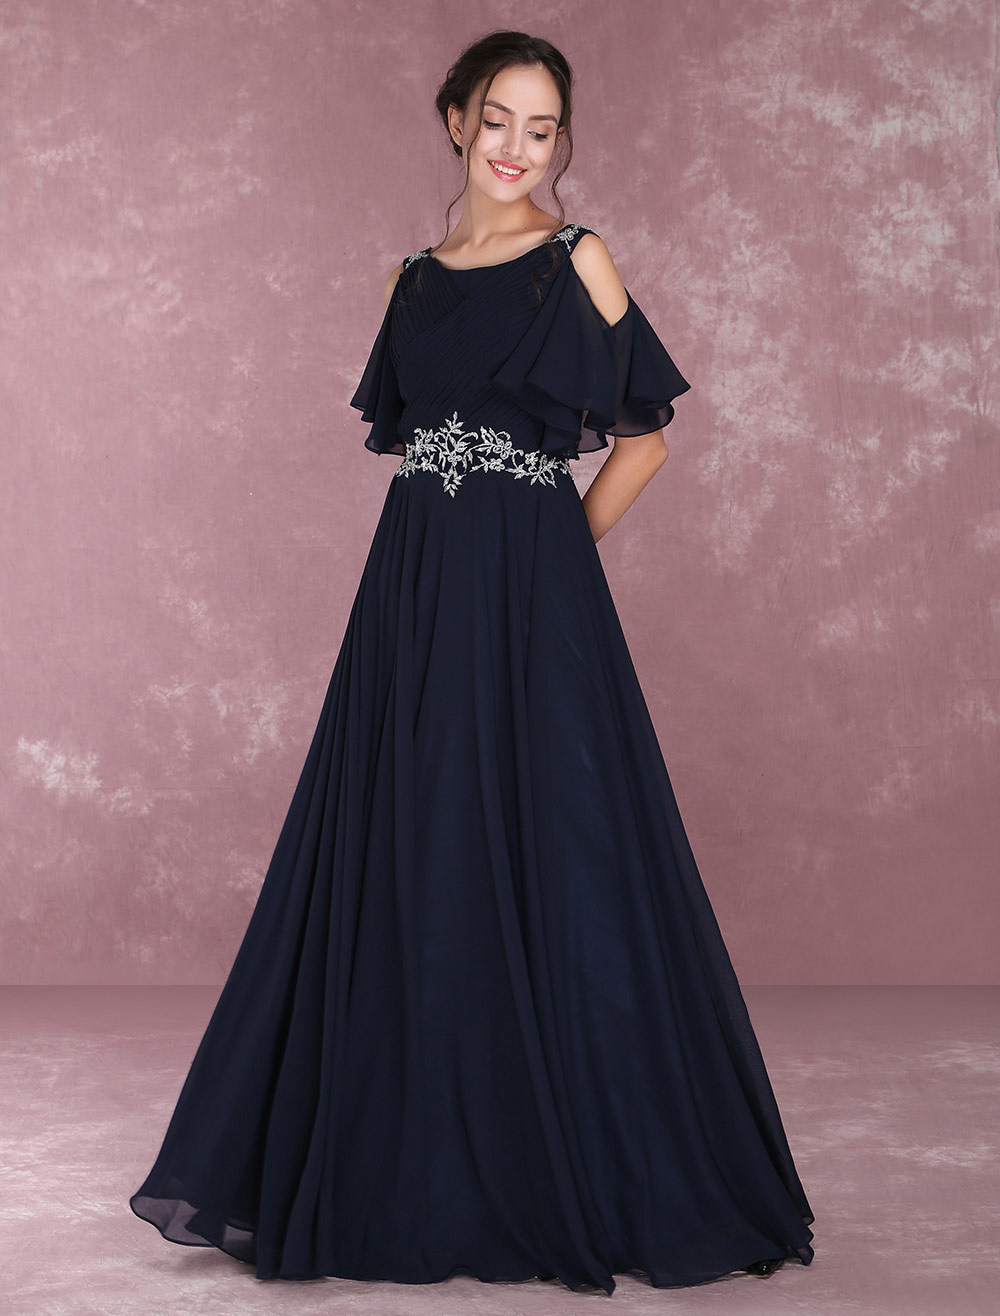 Chiffon Evening Dresses Dark Navy Beading Mothers' Dresses Short Sleeve Cold Shoulder Pleated Floor Length Party Dresses